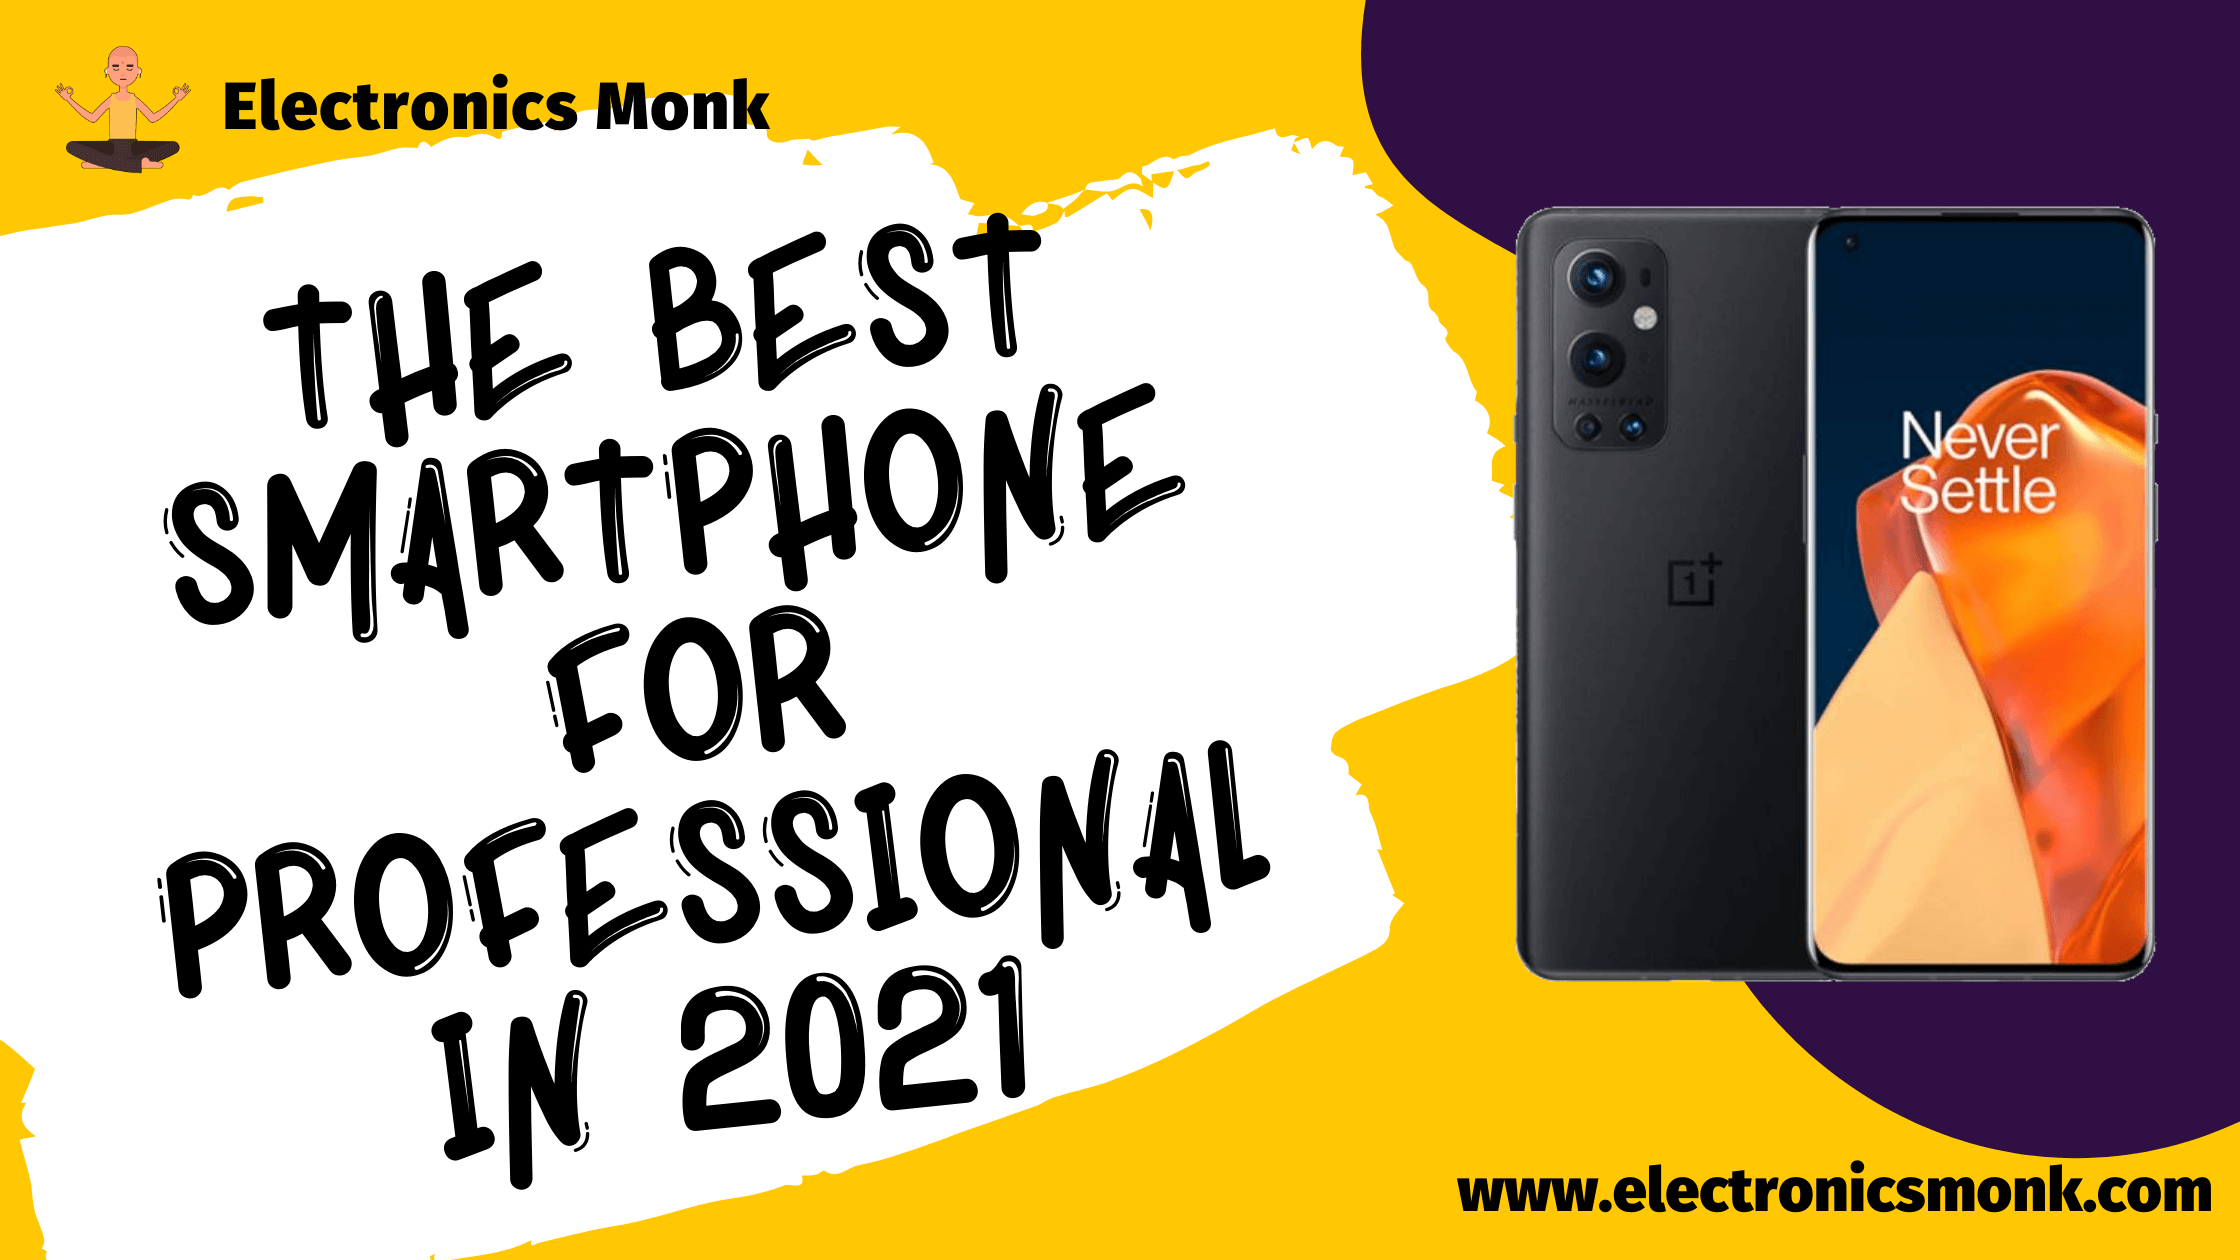 The best smartphone for Professional in 2021